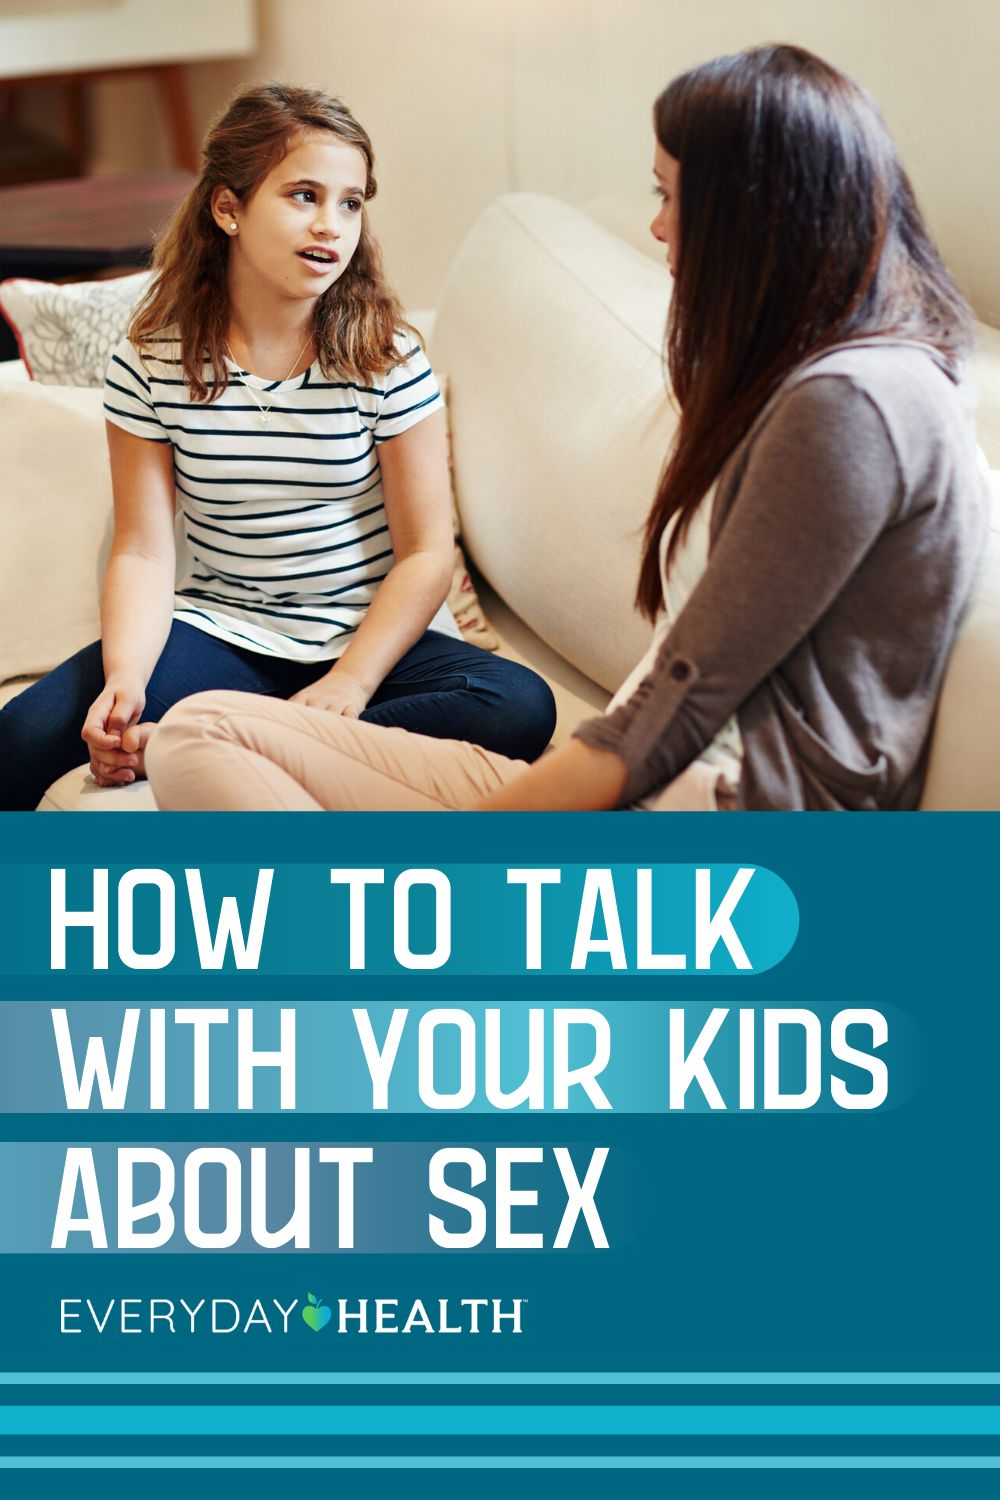 How to Talk With Kids About Sex